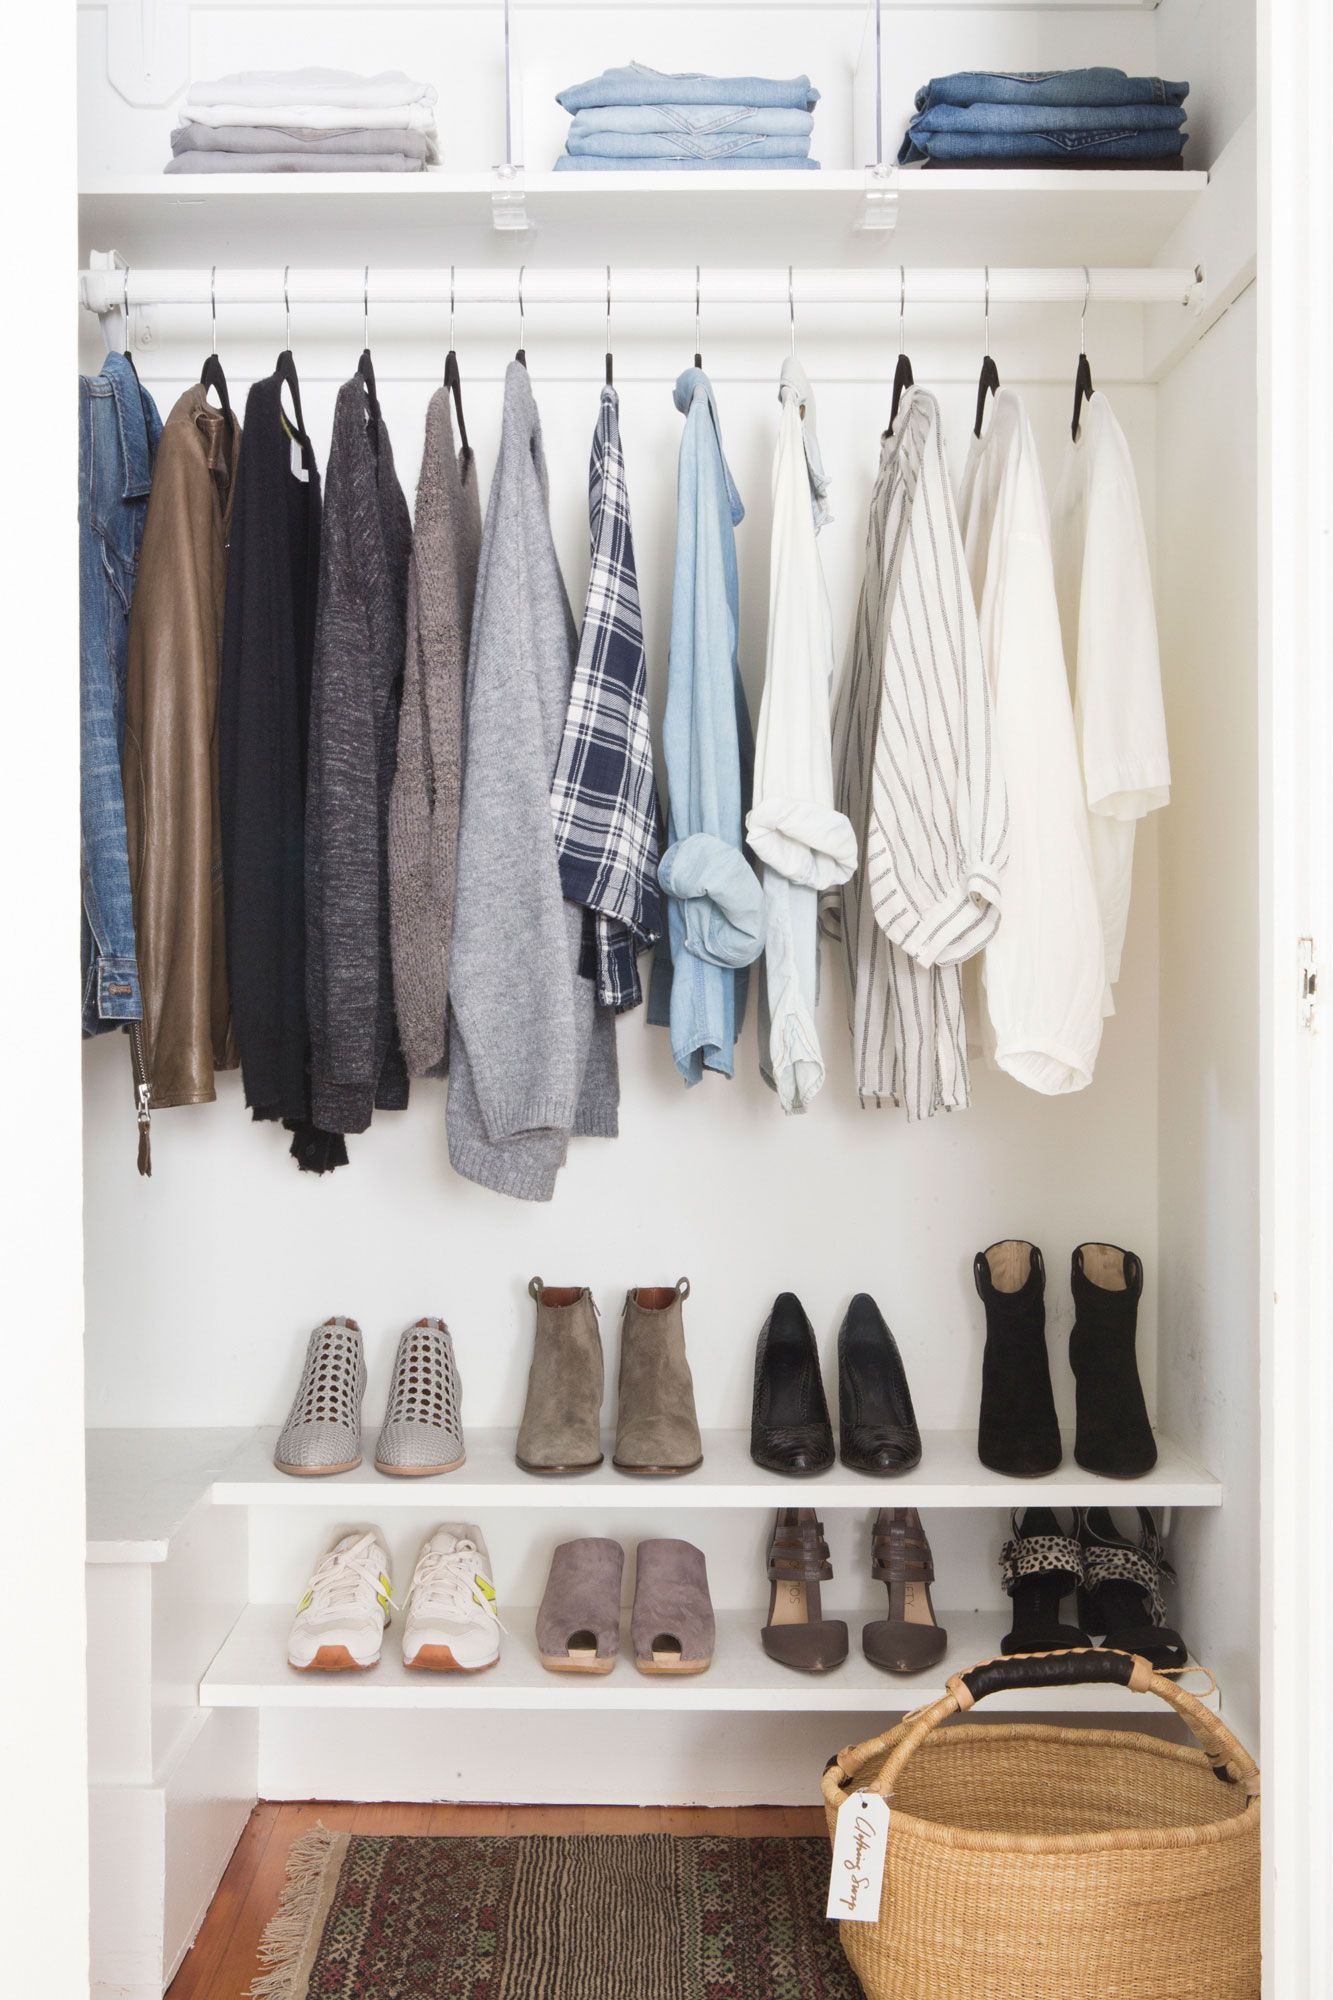 5 Simple Steps To A Streamlined Stylish Closet Rue With Images Minimalist Closet Closet